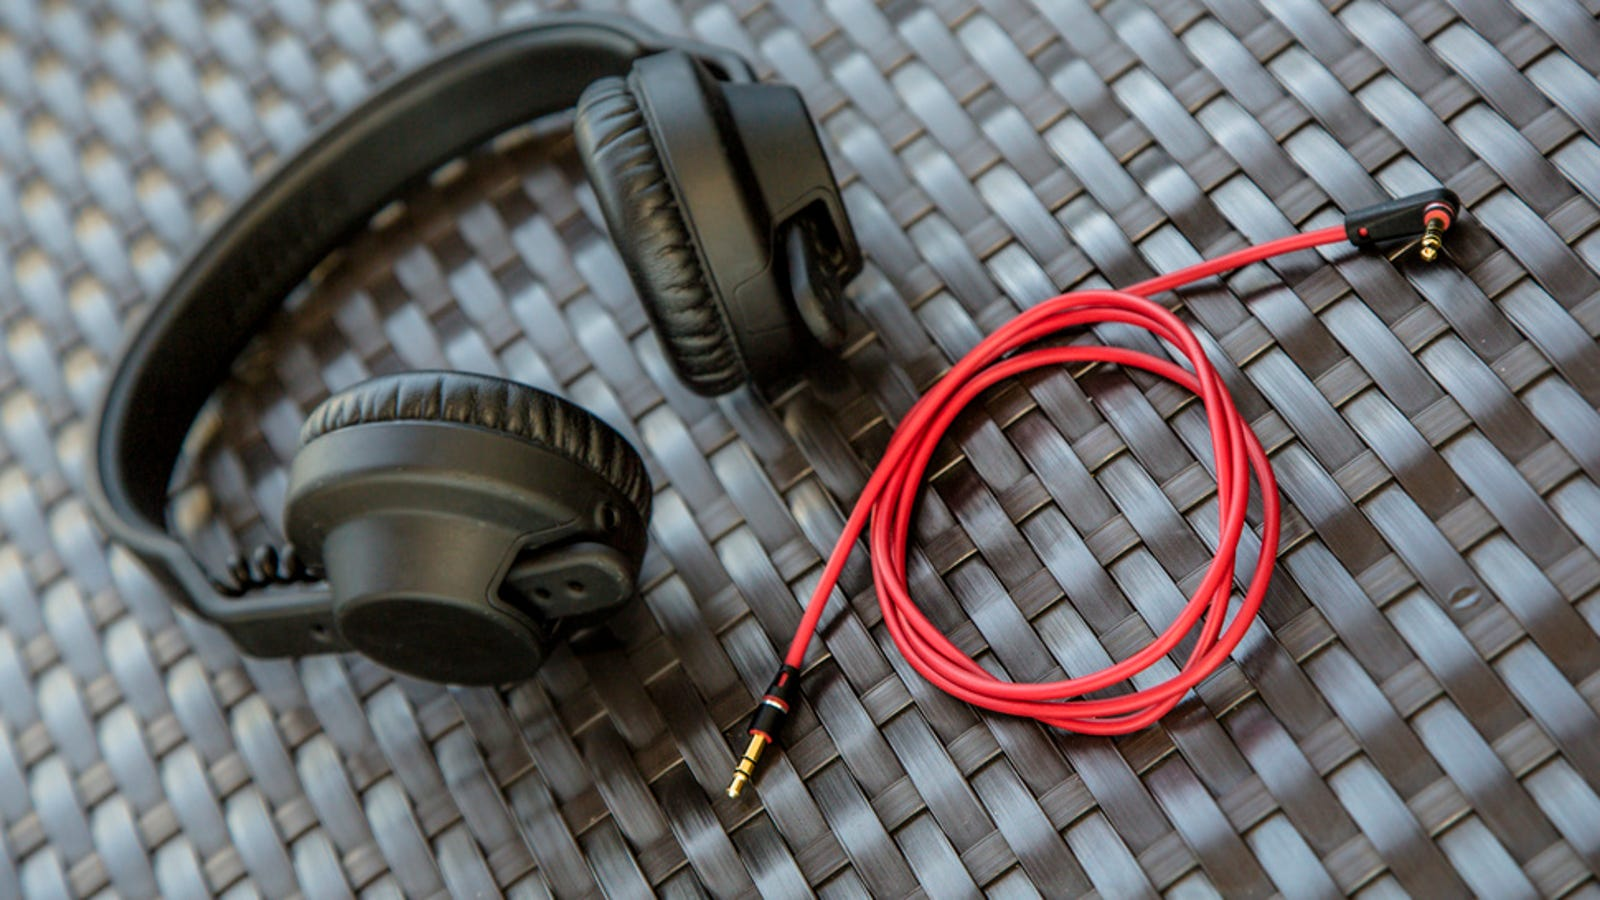 wireless earbud jaybird - Getting a Shorter Headphone Cable Will Change Your Life